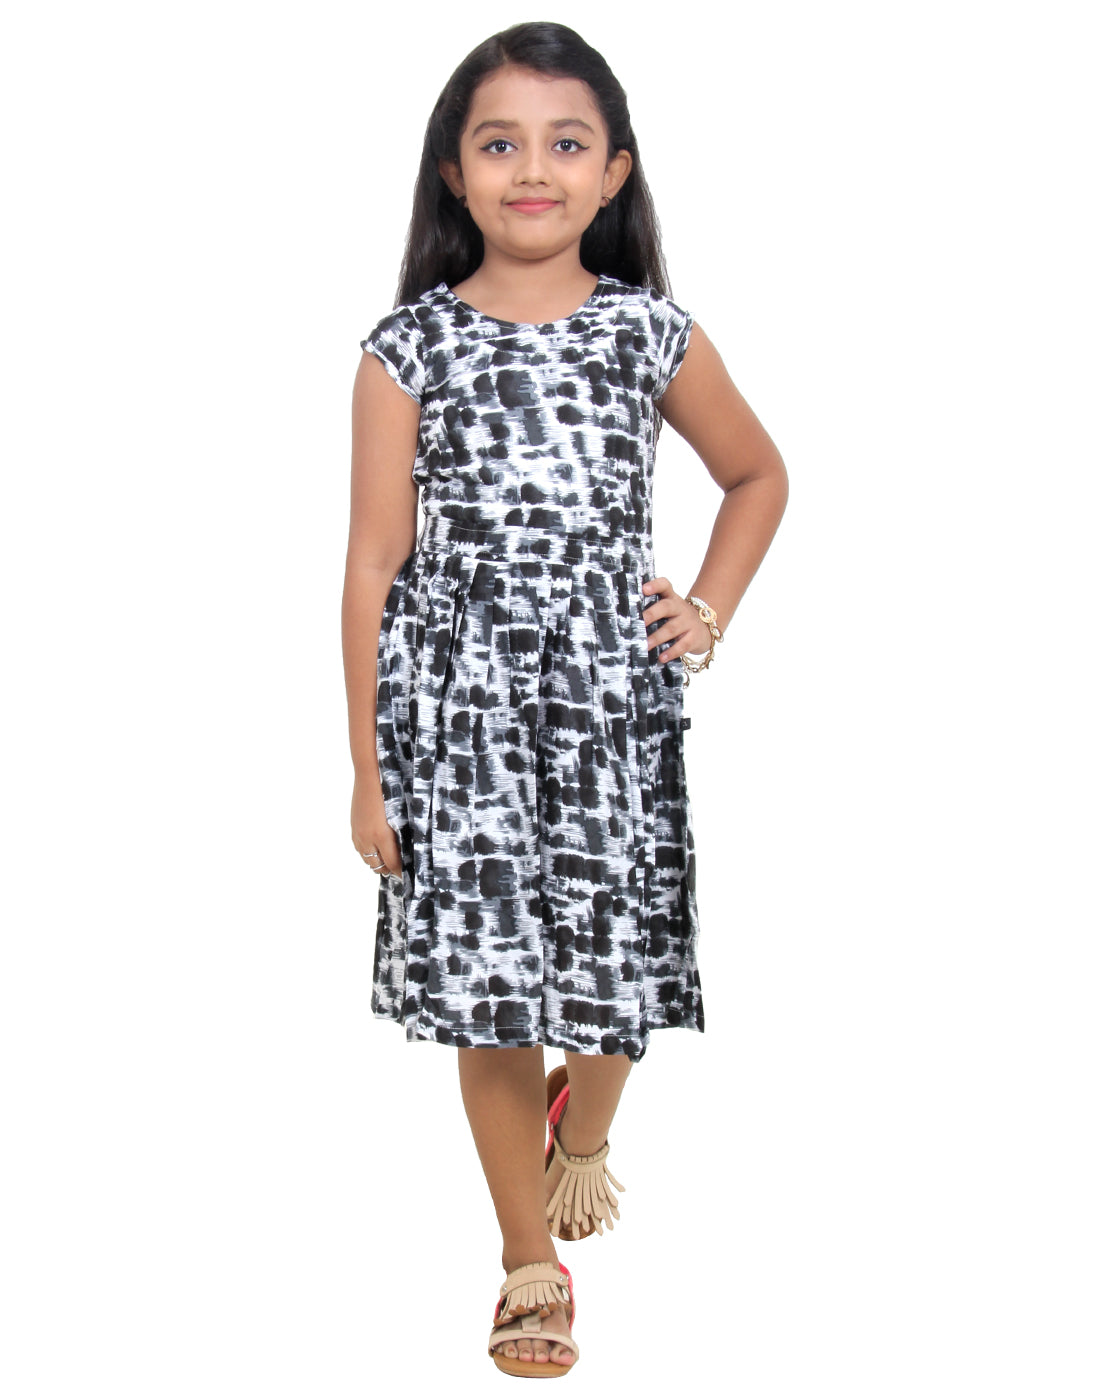 Pirate Black Party Wear Dress For Girls